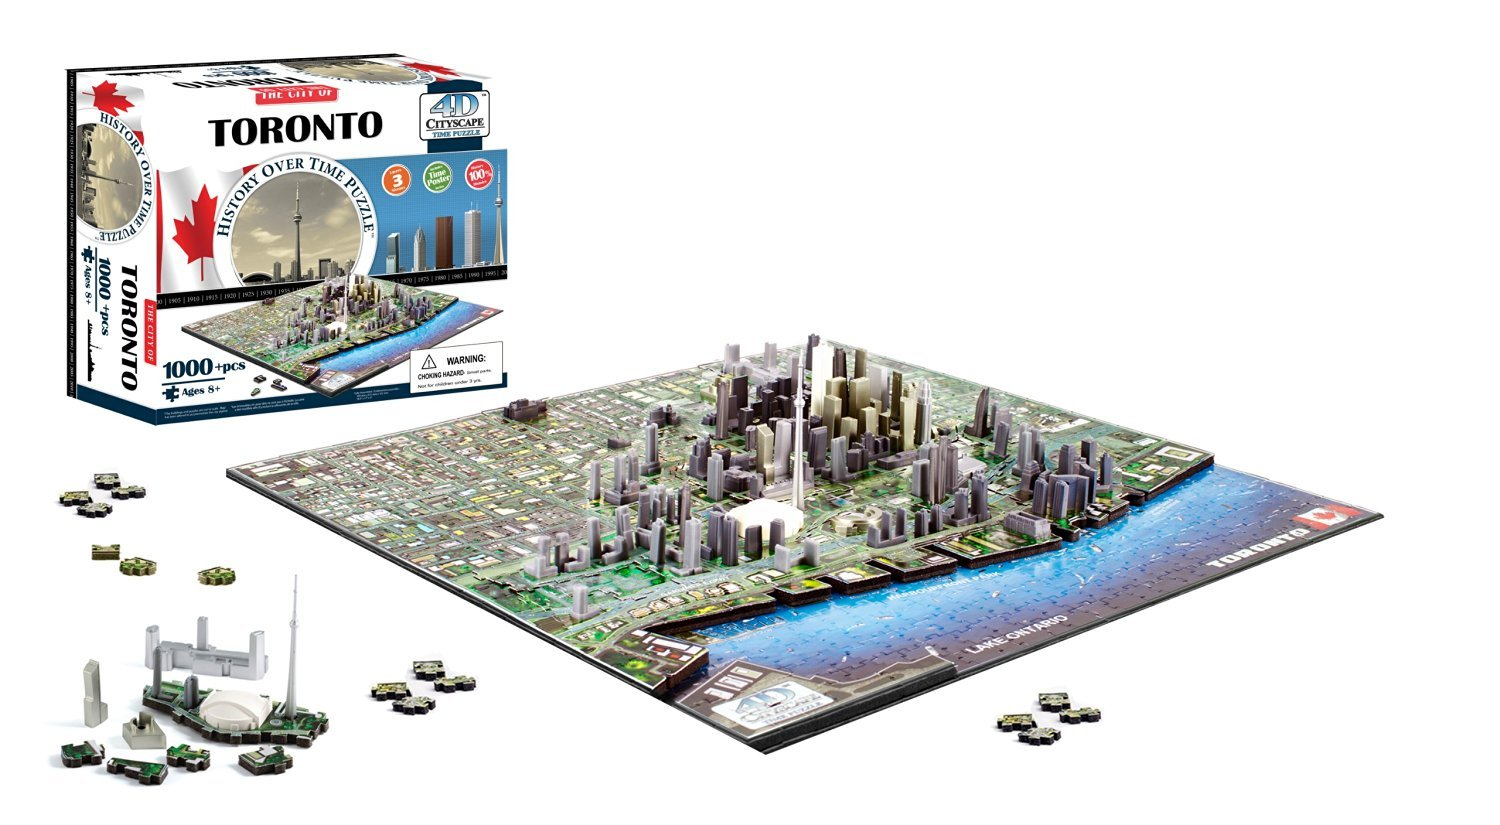 4D Cityscape Toronto, Canada Puzzle [並行輸入品]   B01LY4D2A8, ナカツエムラ d9ac8d94